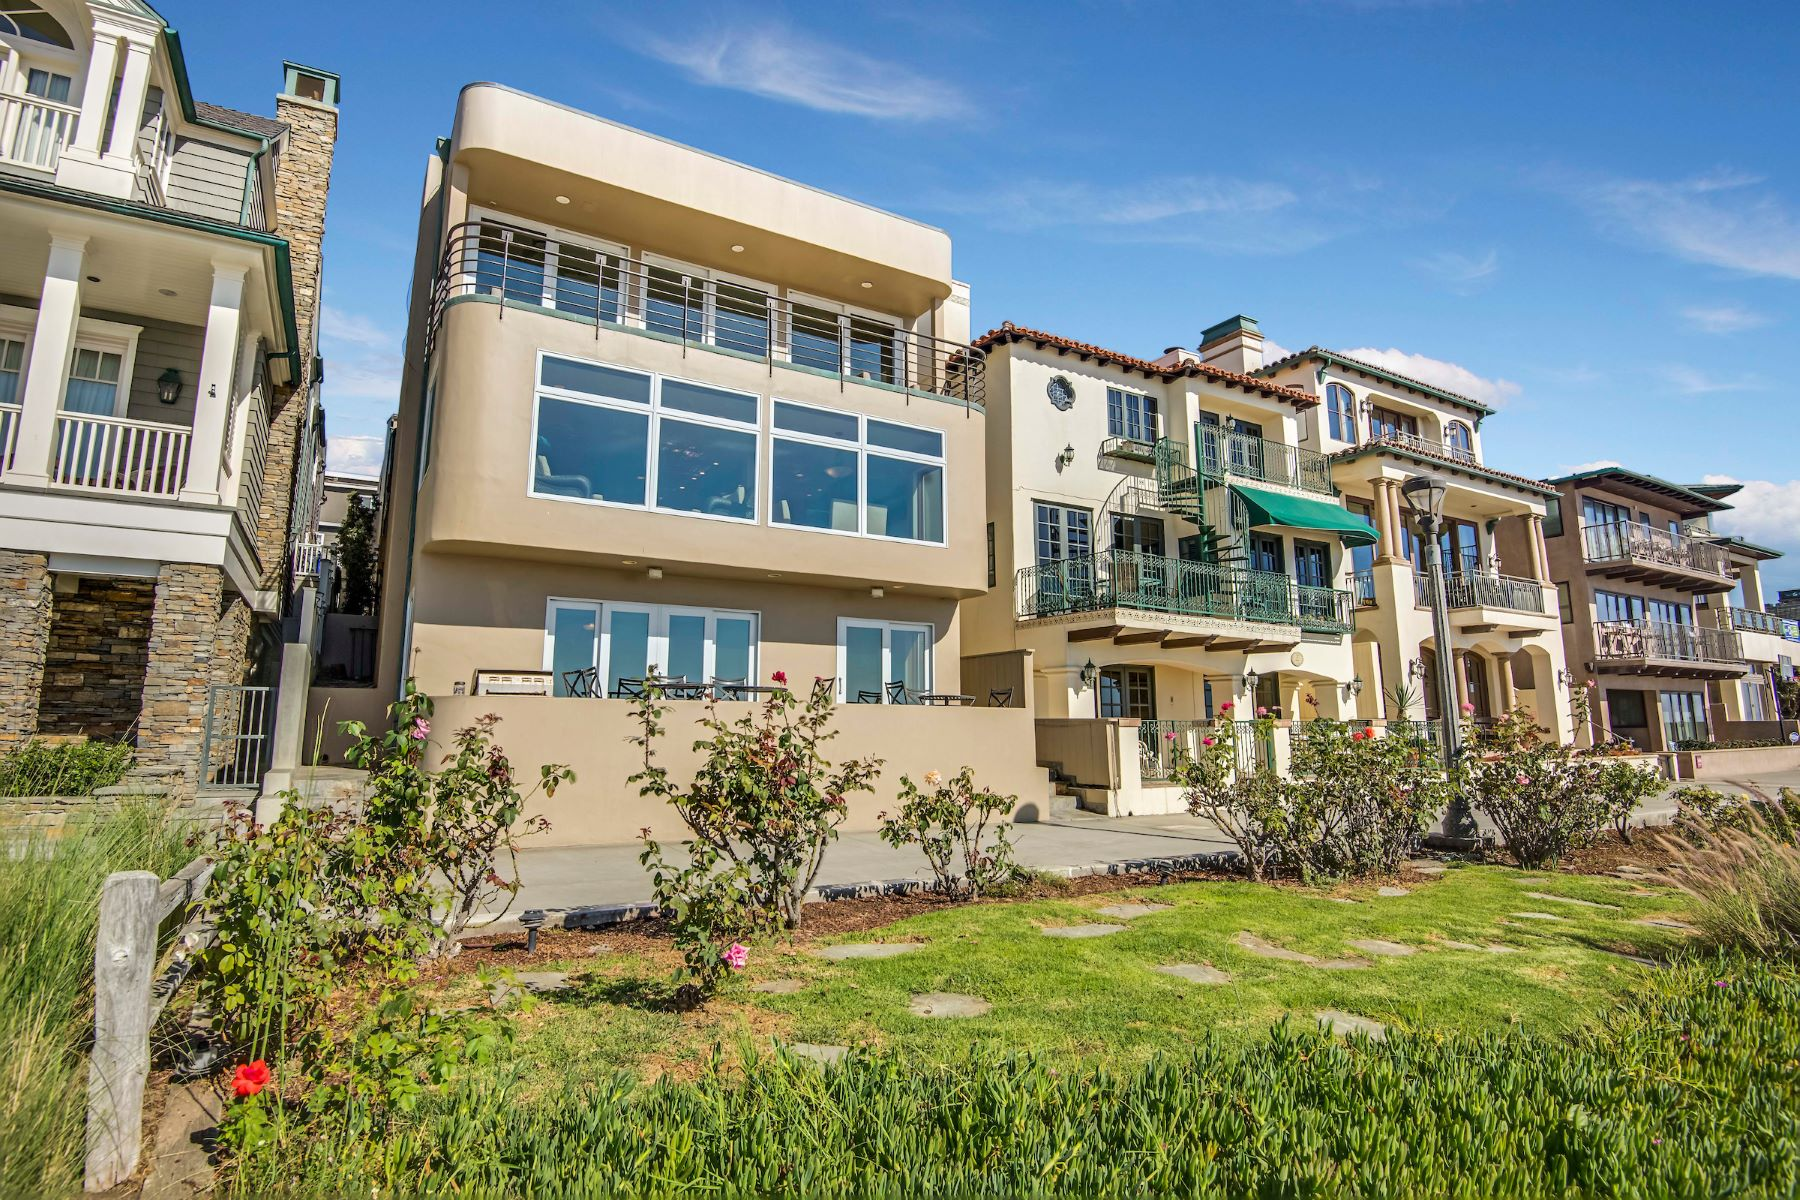 Single Family Home for Sale at Oceanfront Living 3416 The Strand Manhattan Beach, California, 90266 United States